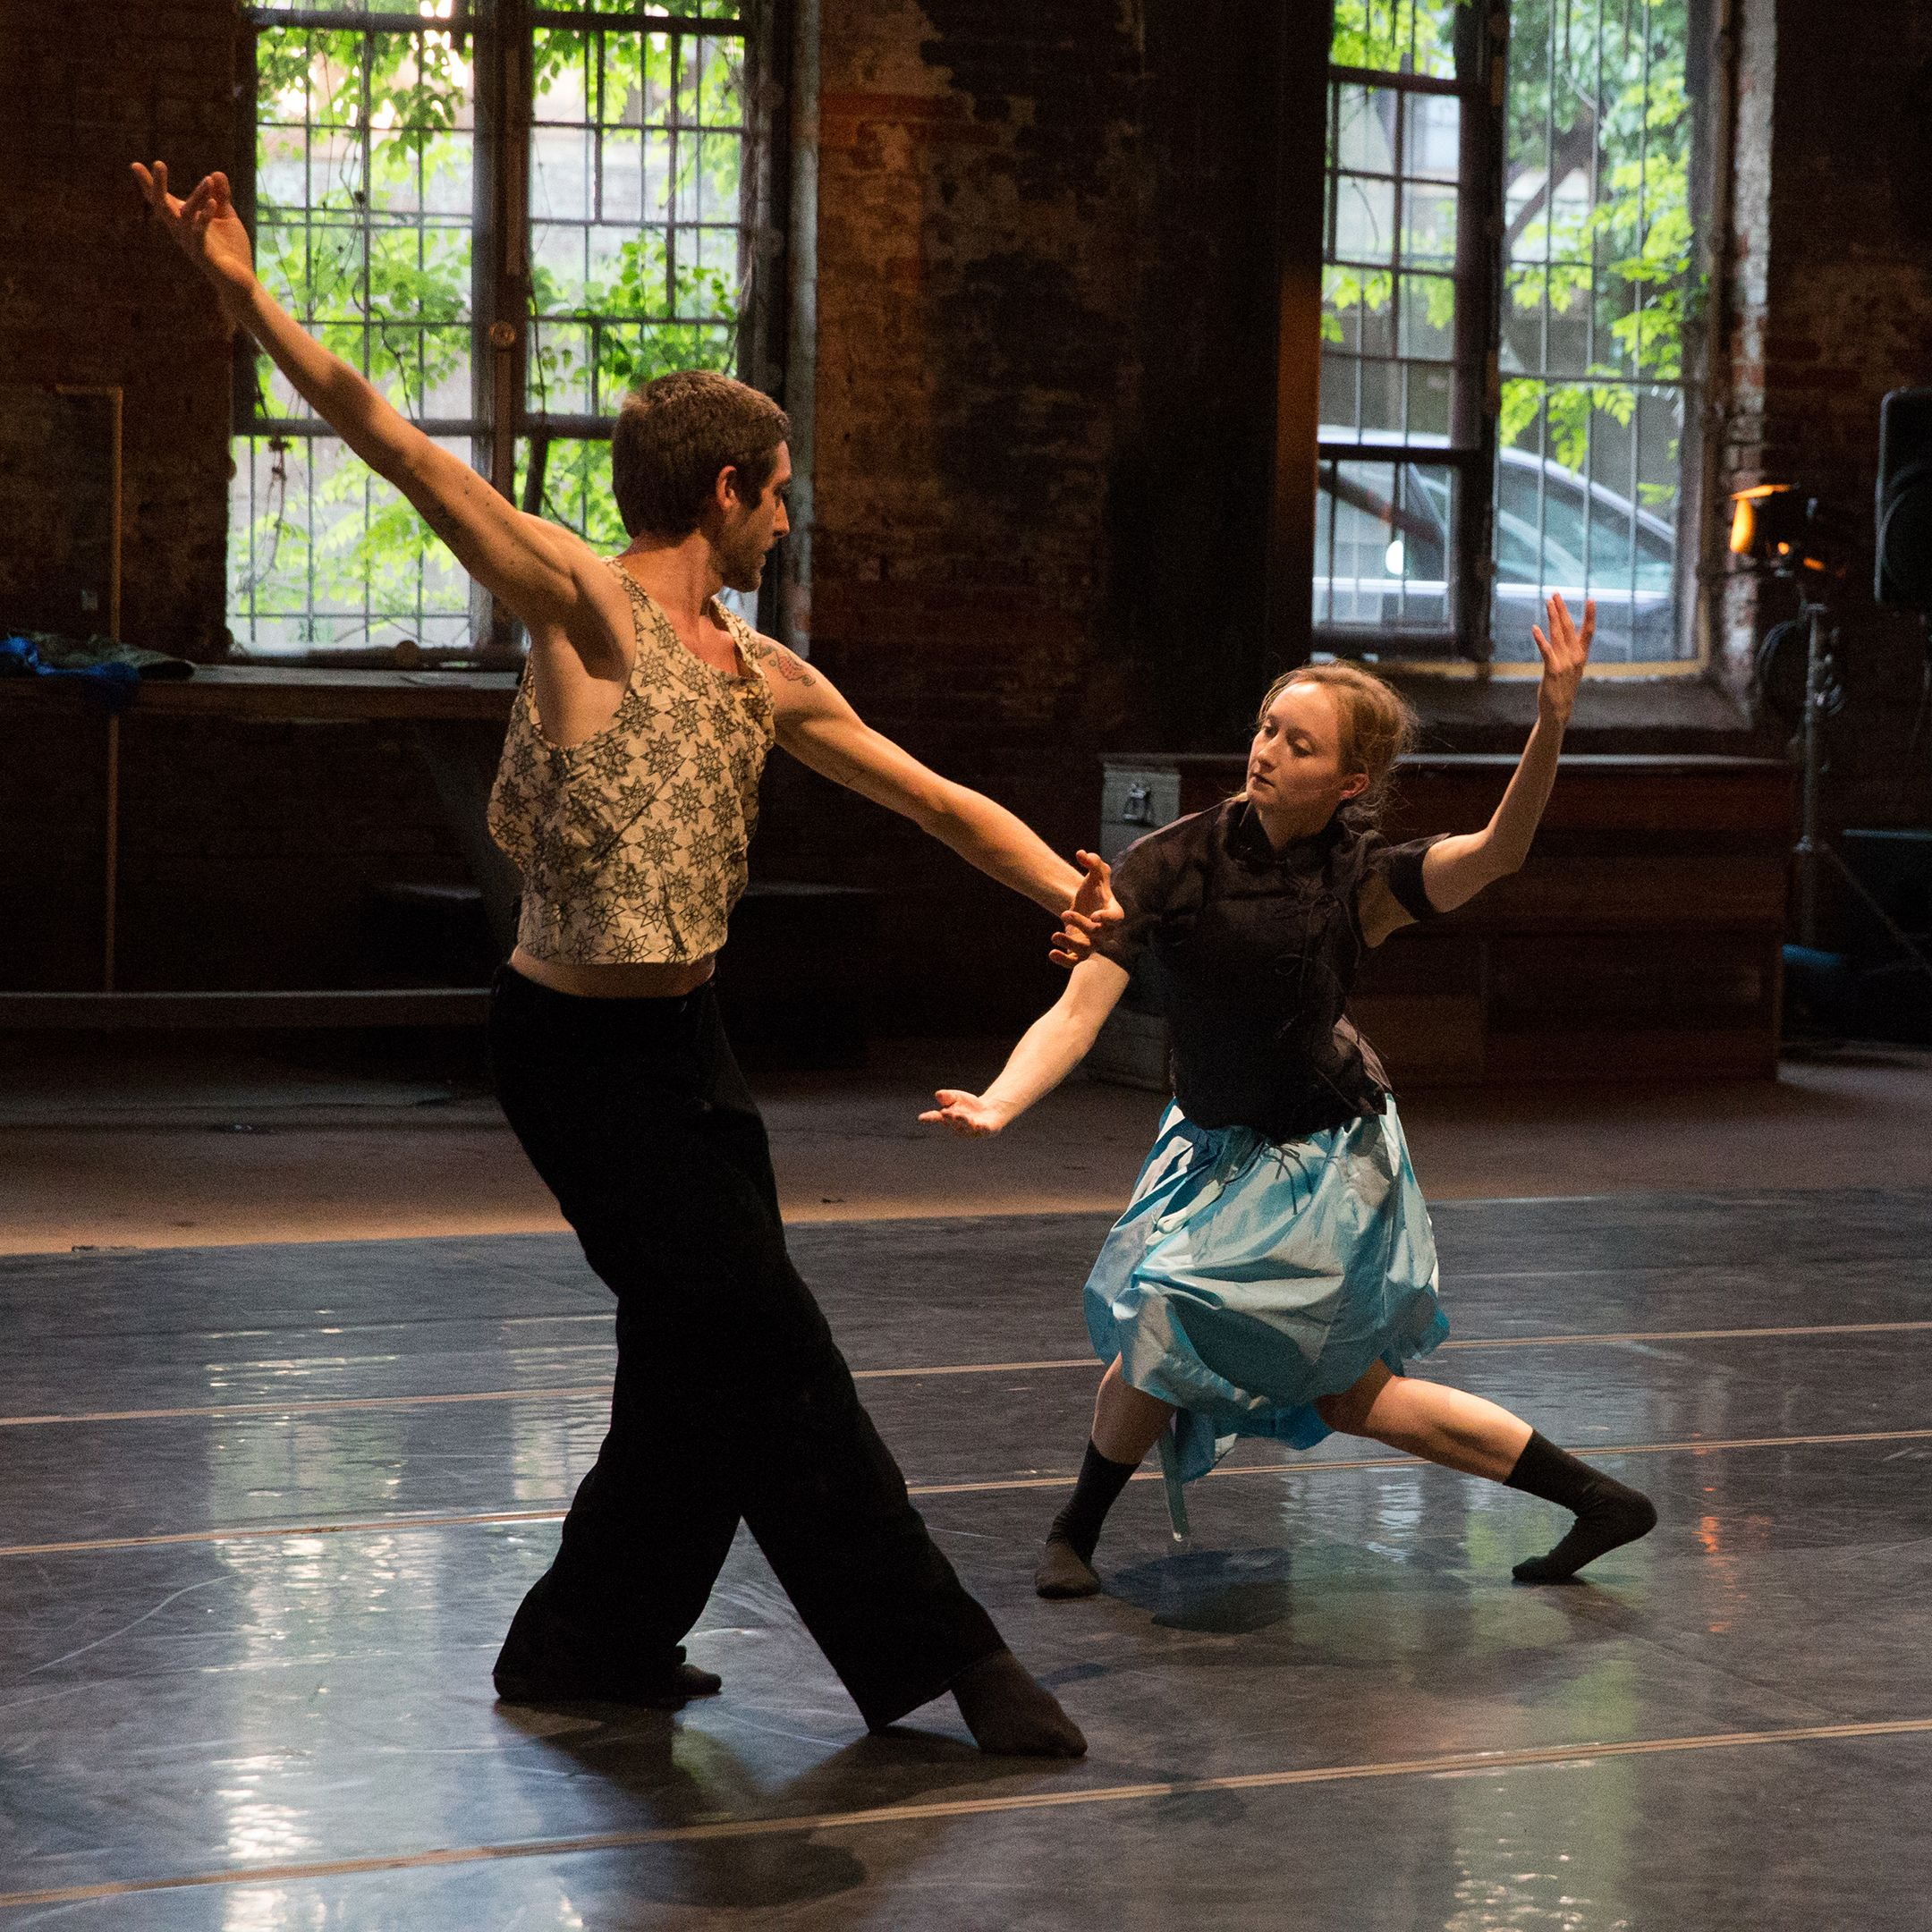 CORE performance Co. in The Liberated Accident-- Erik & Rose photos by John Ramspott (c) 2013